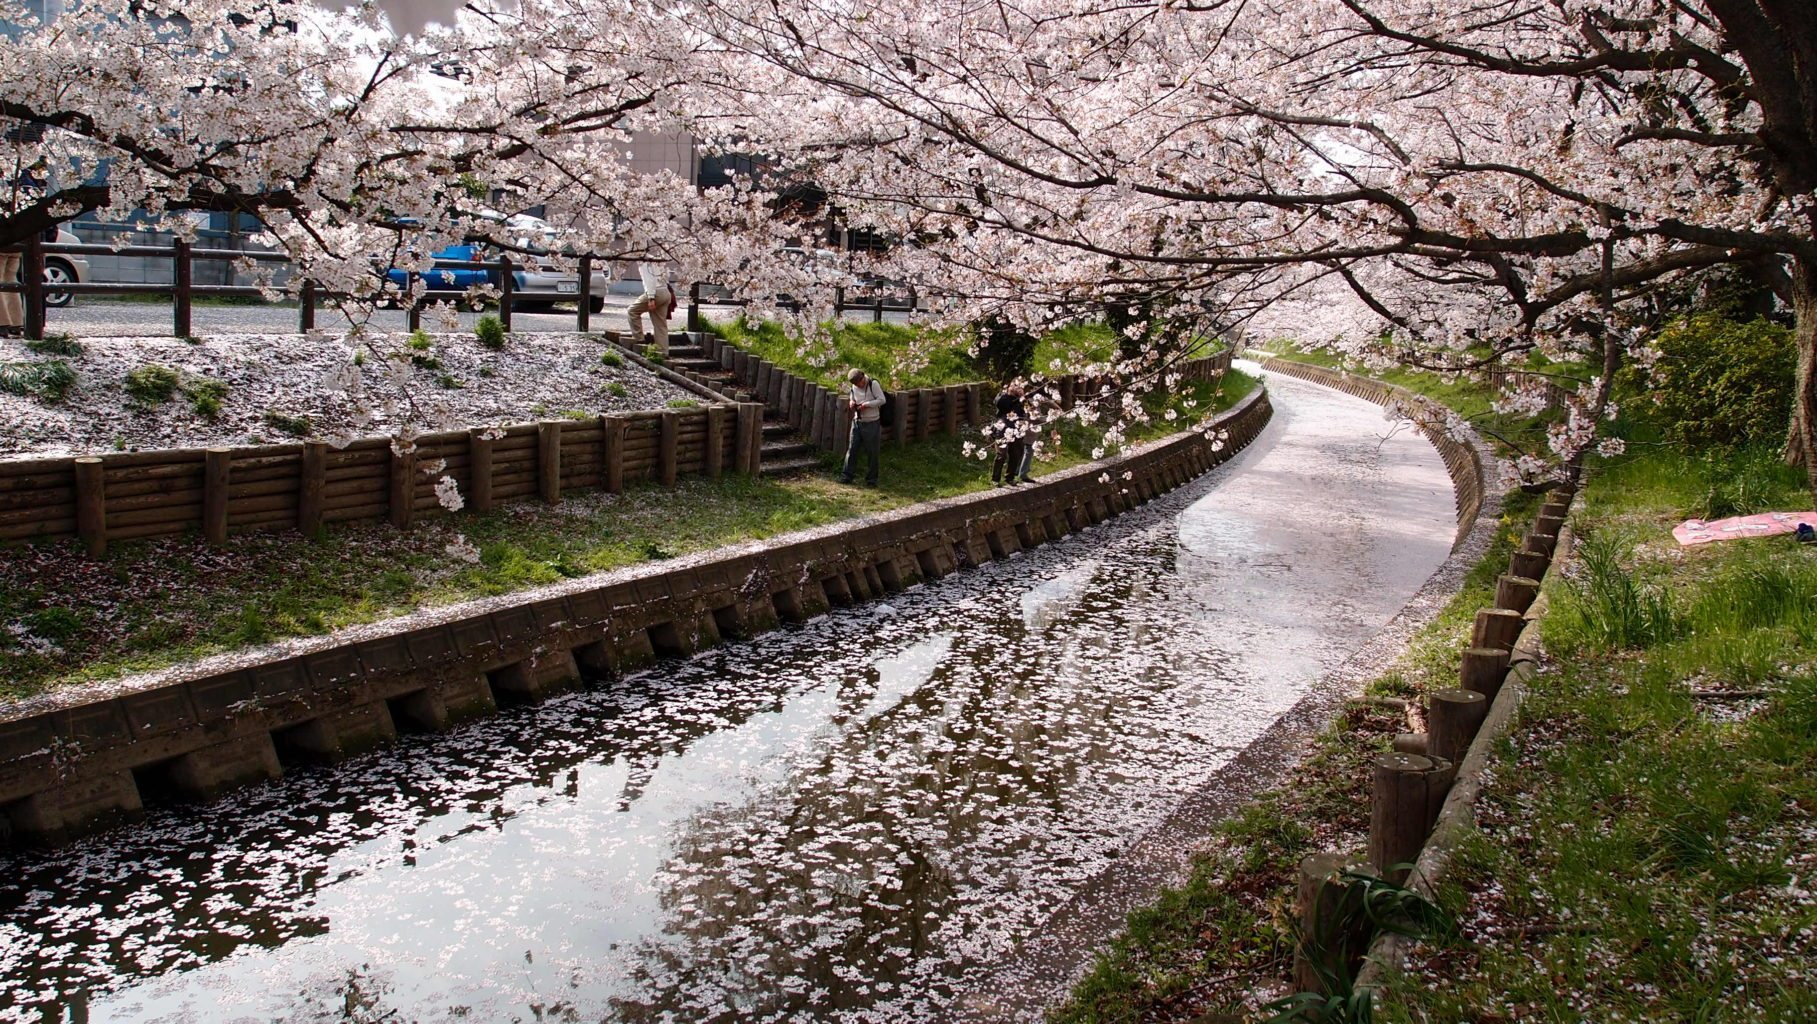 Image: Cherry trees in full bloom drop petals making a drainage ditch seem magical